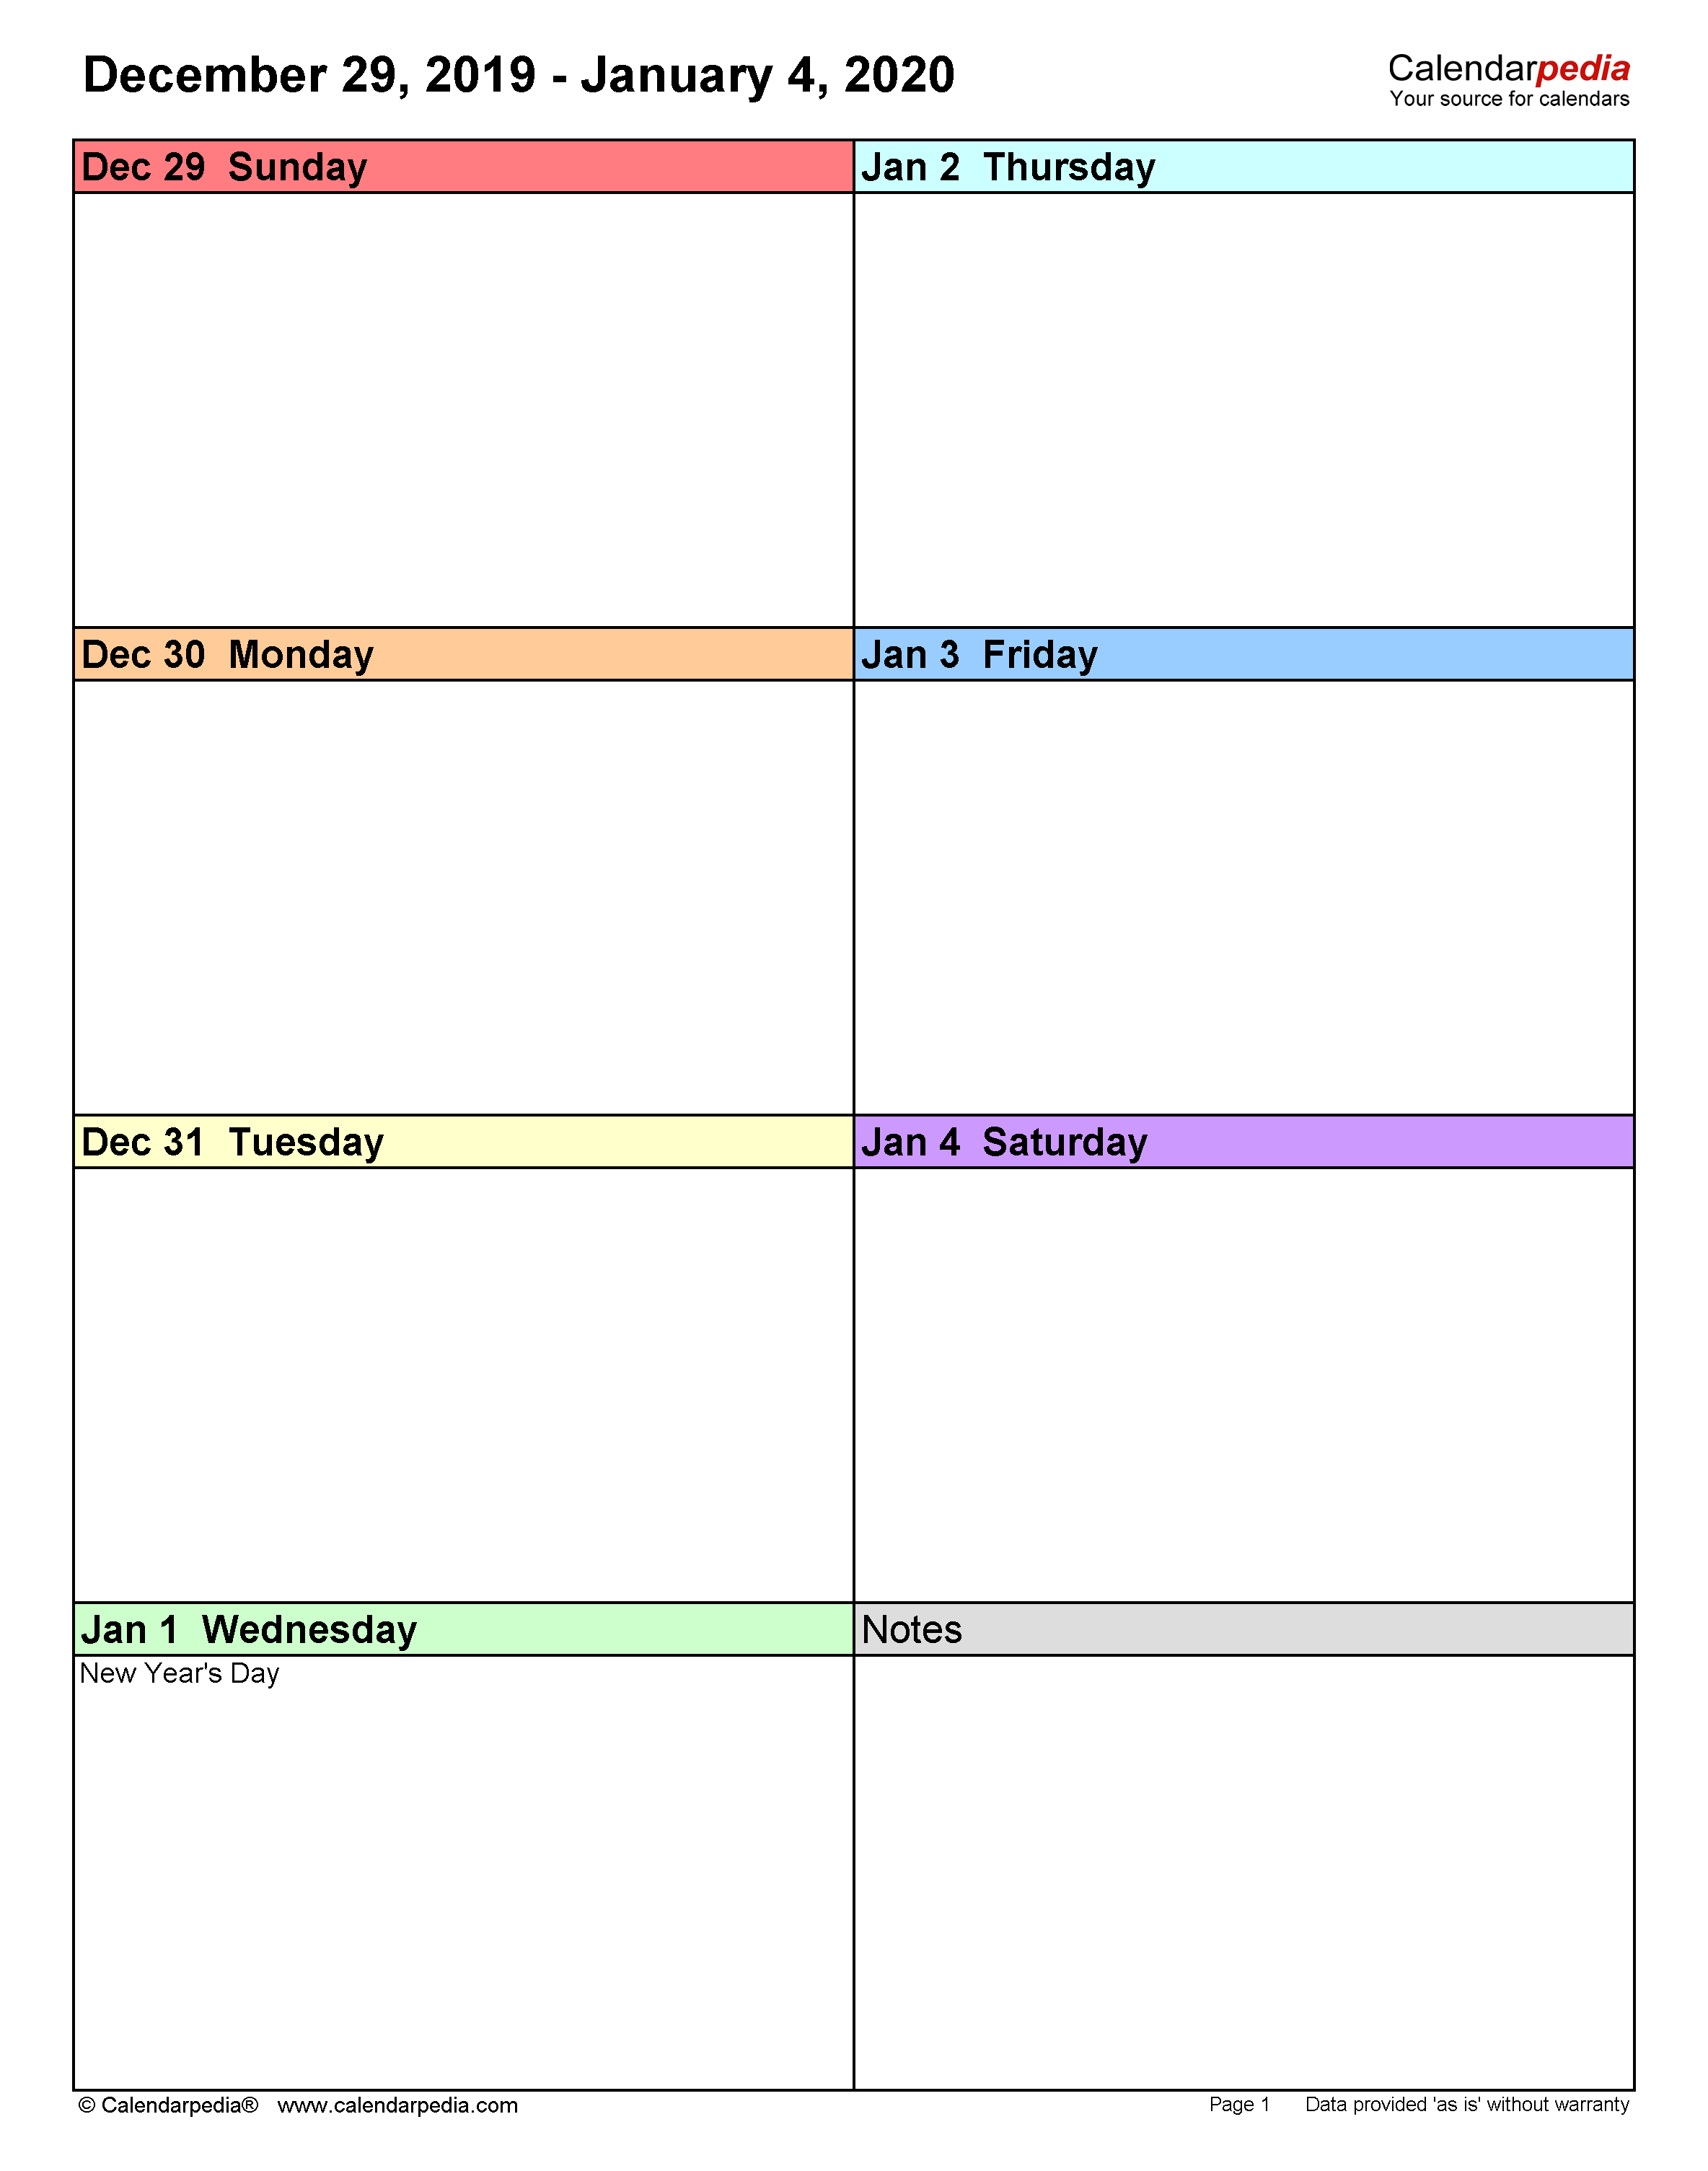 Weekly Calendars 2020 For Word - 12 Free Printable Templates inside 2020 Calendar That Shows Only Monday Through Friday